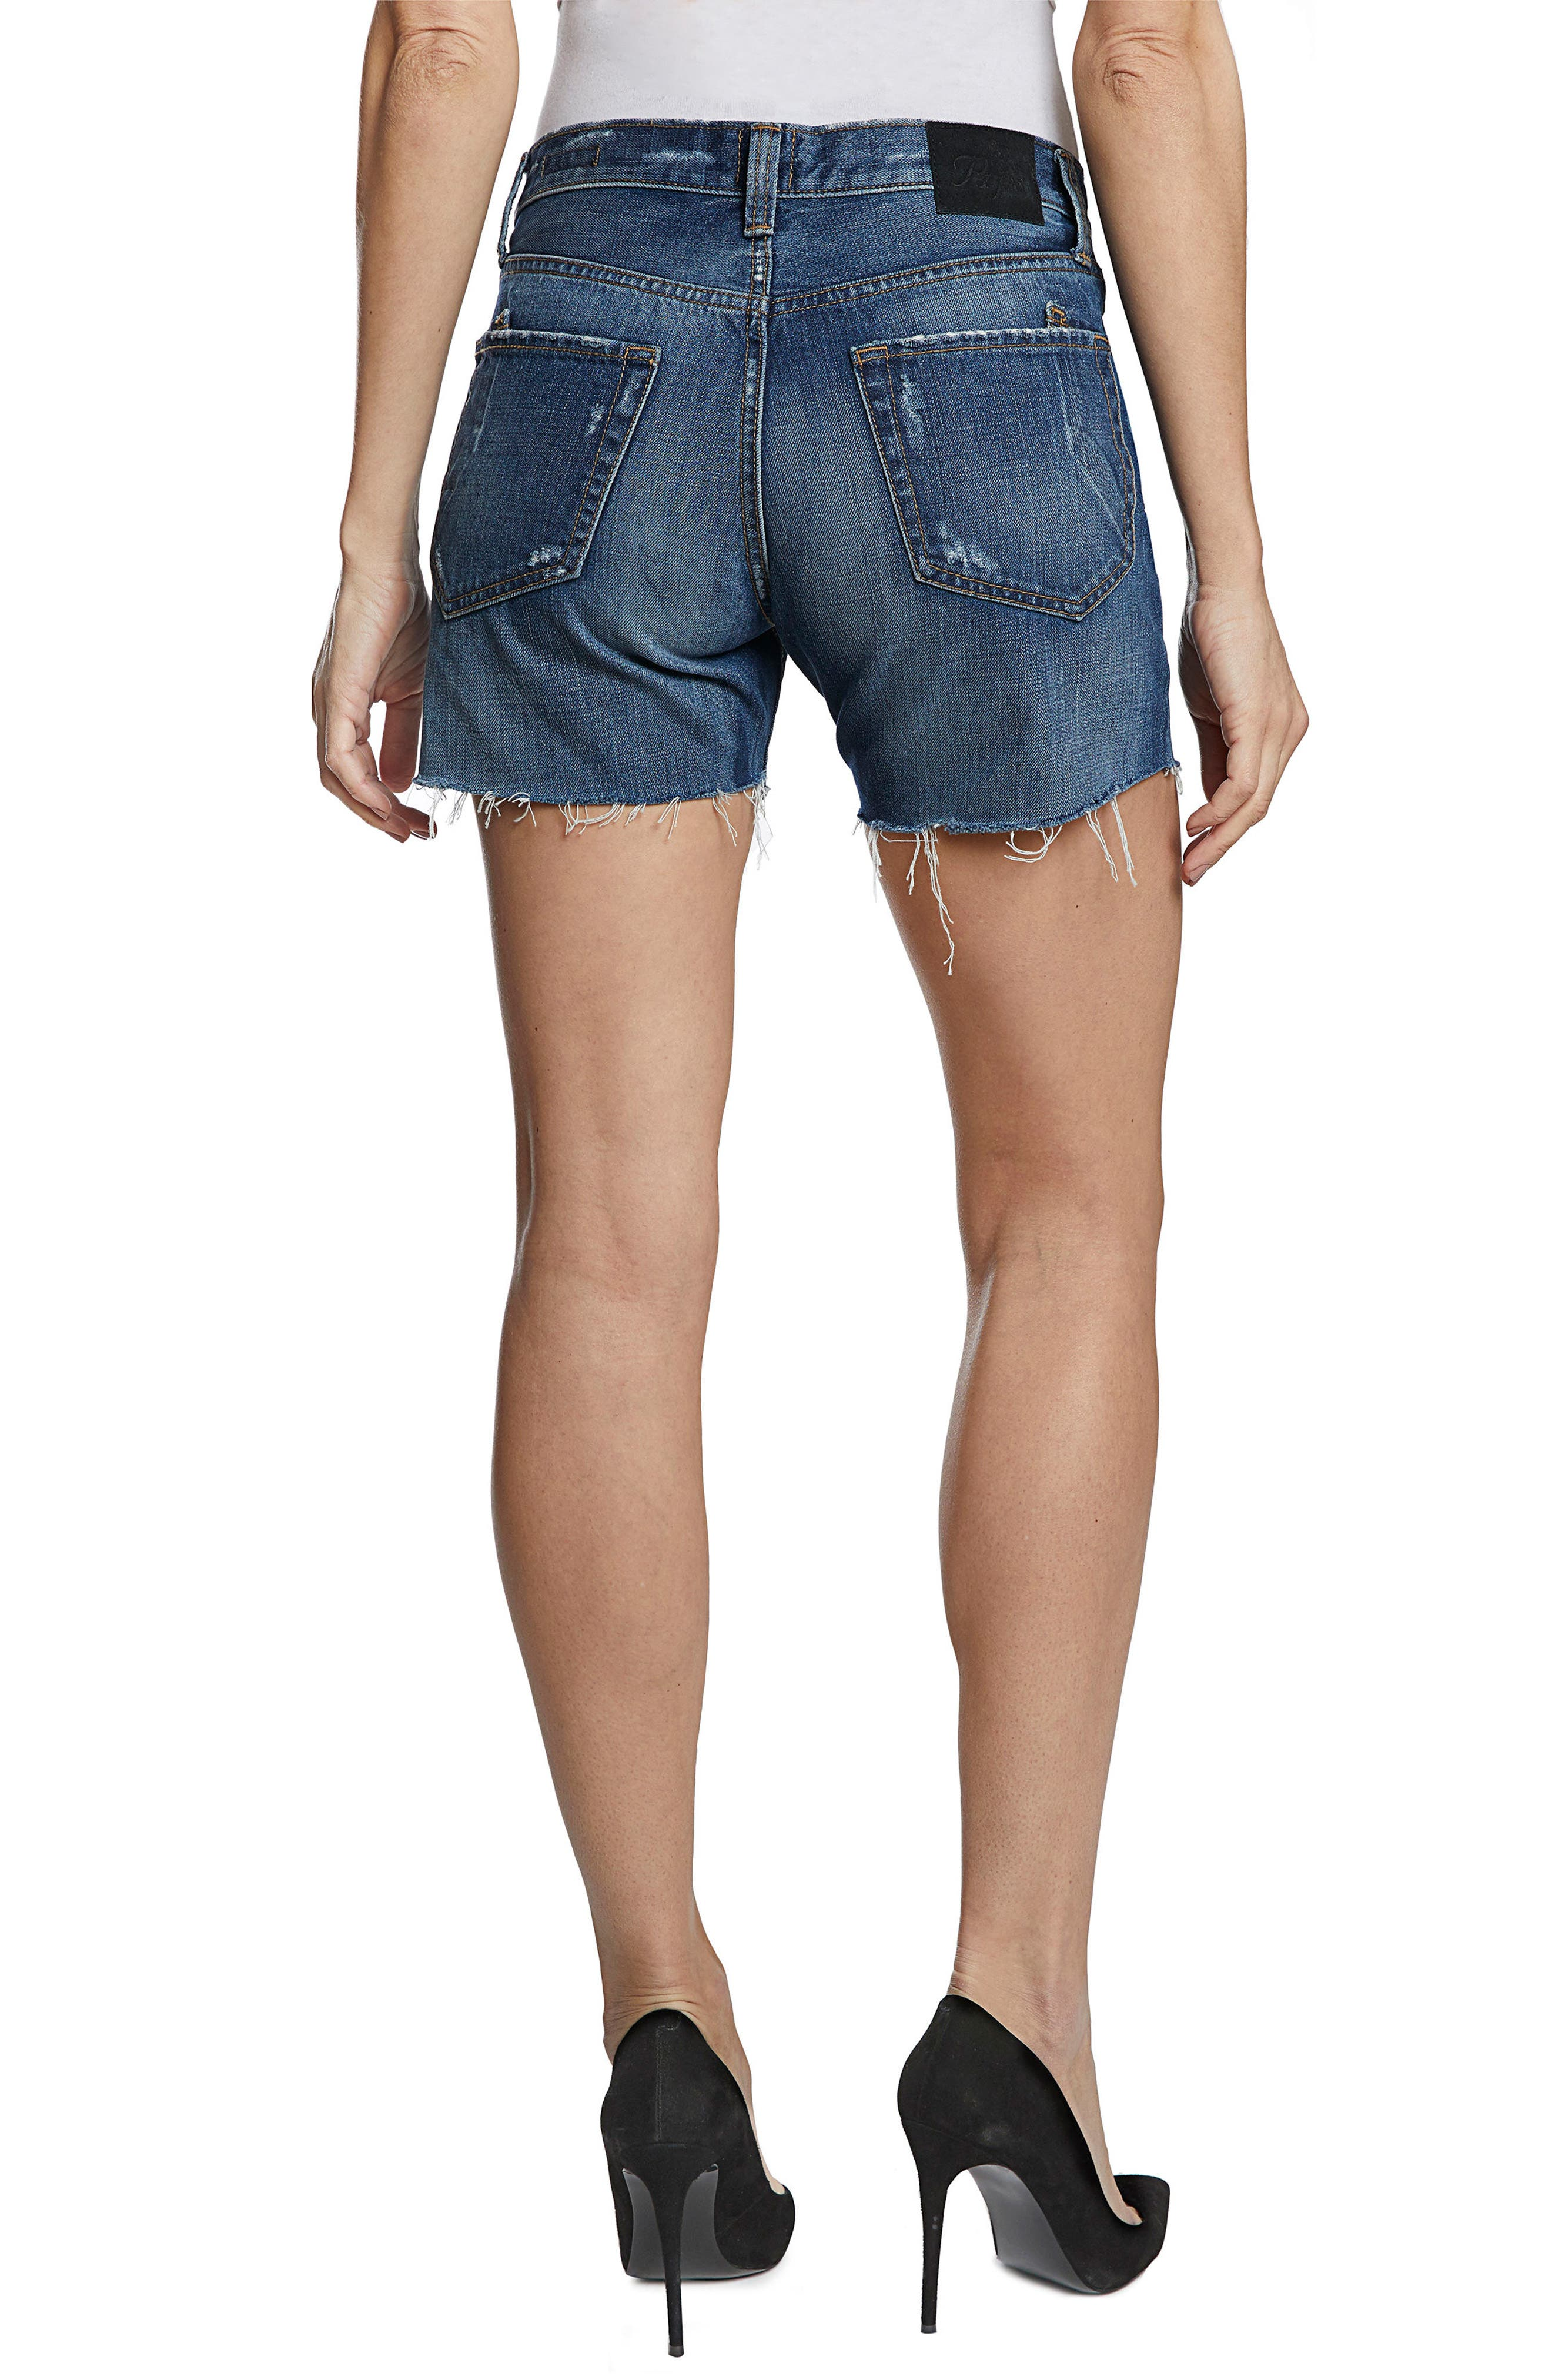 El Camino Cutoff Denim Boyfriend Shorts,                             Alternate thumbnail 2, color,                             438